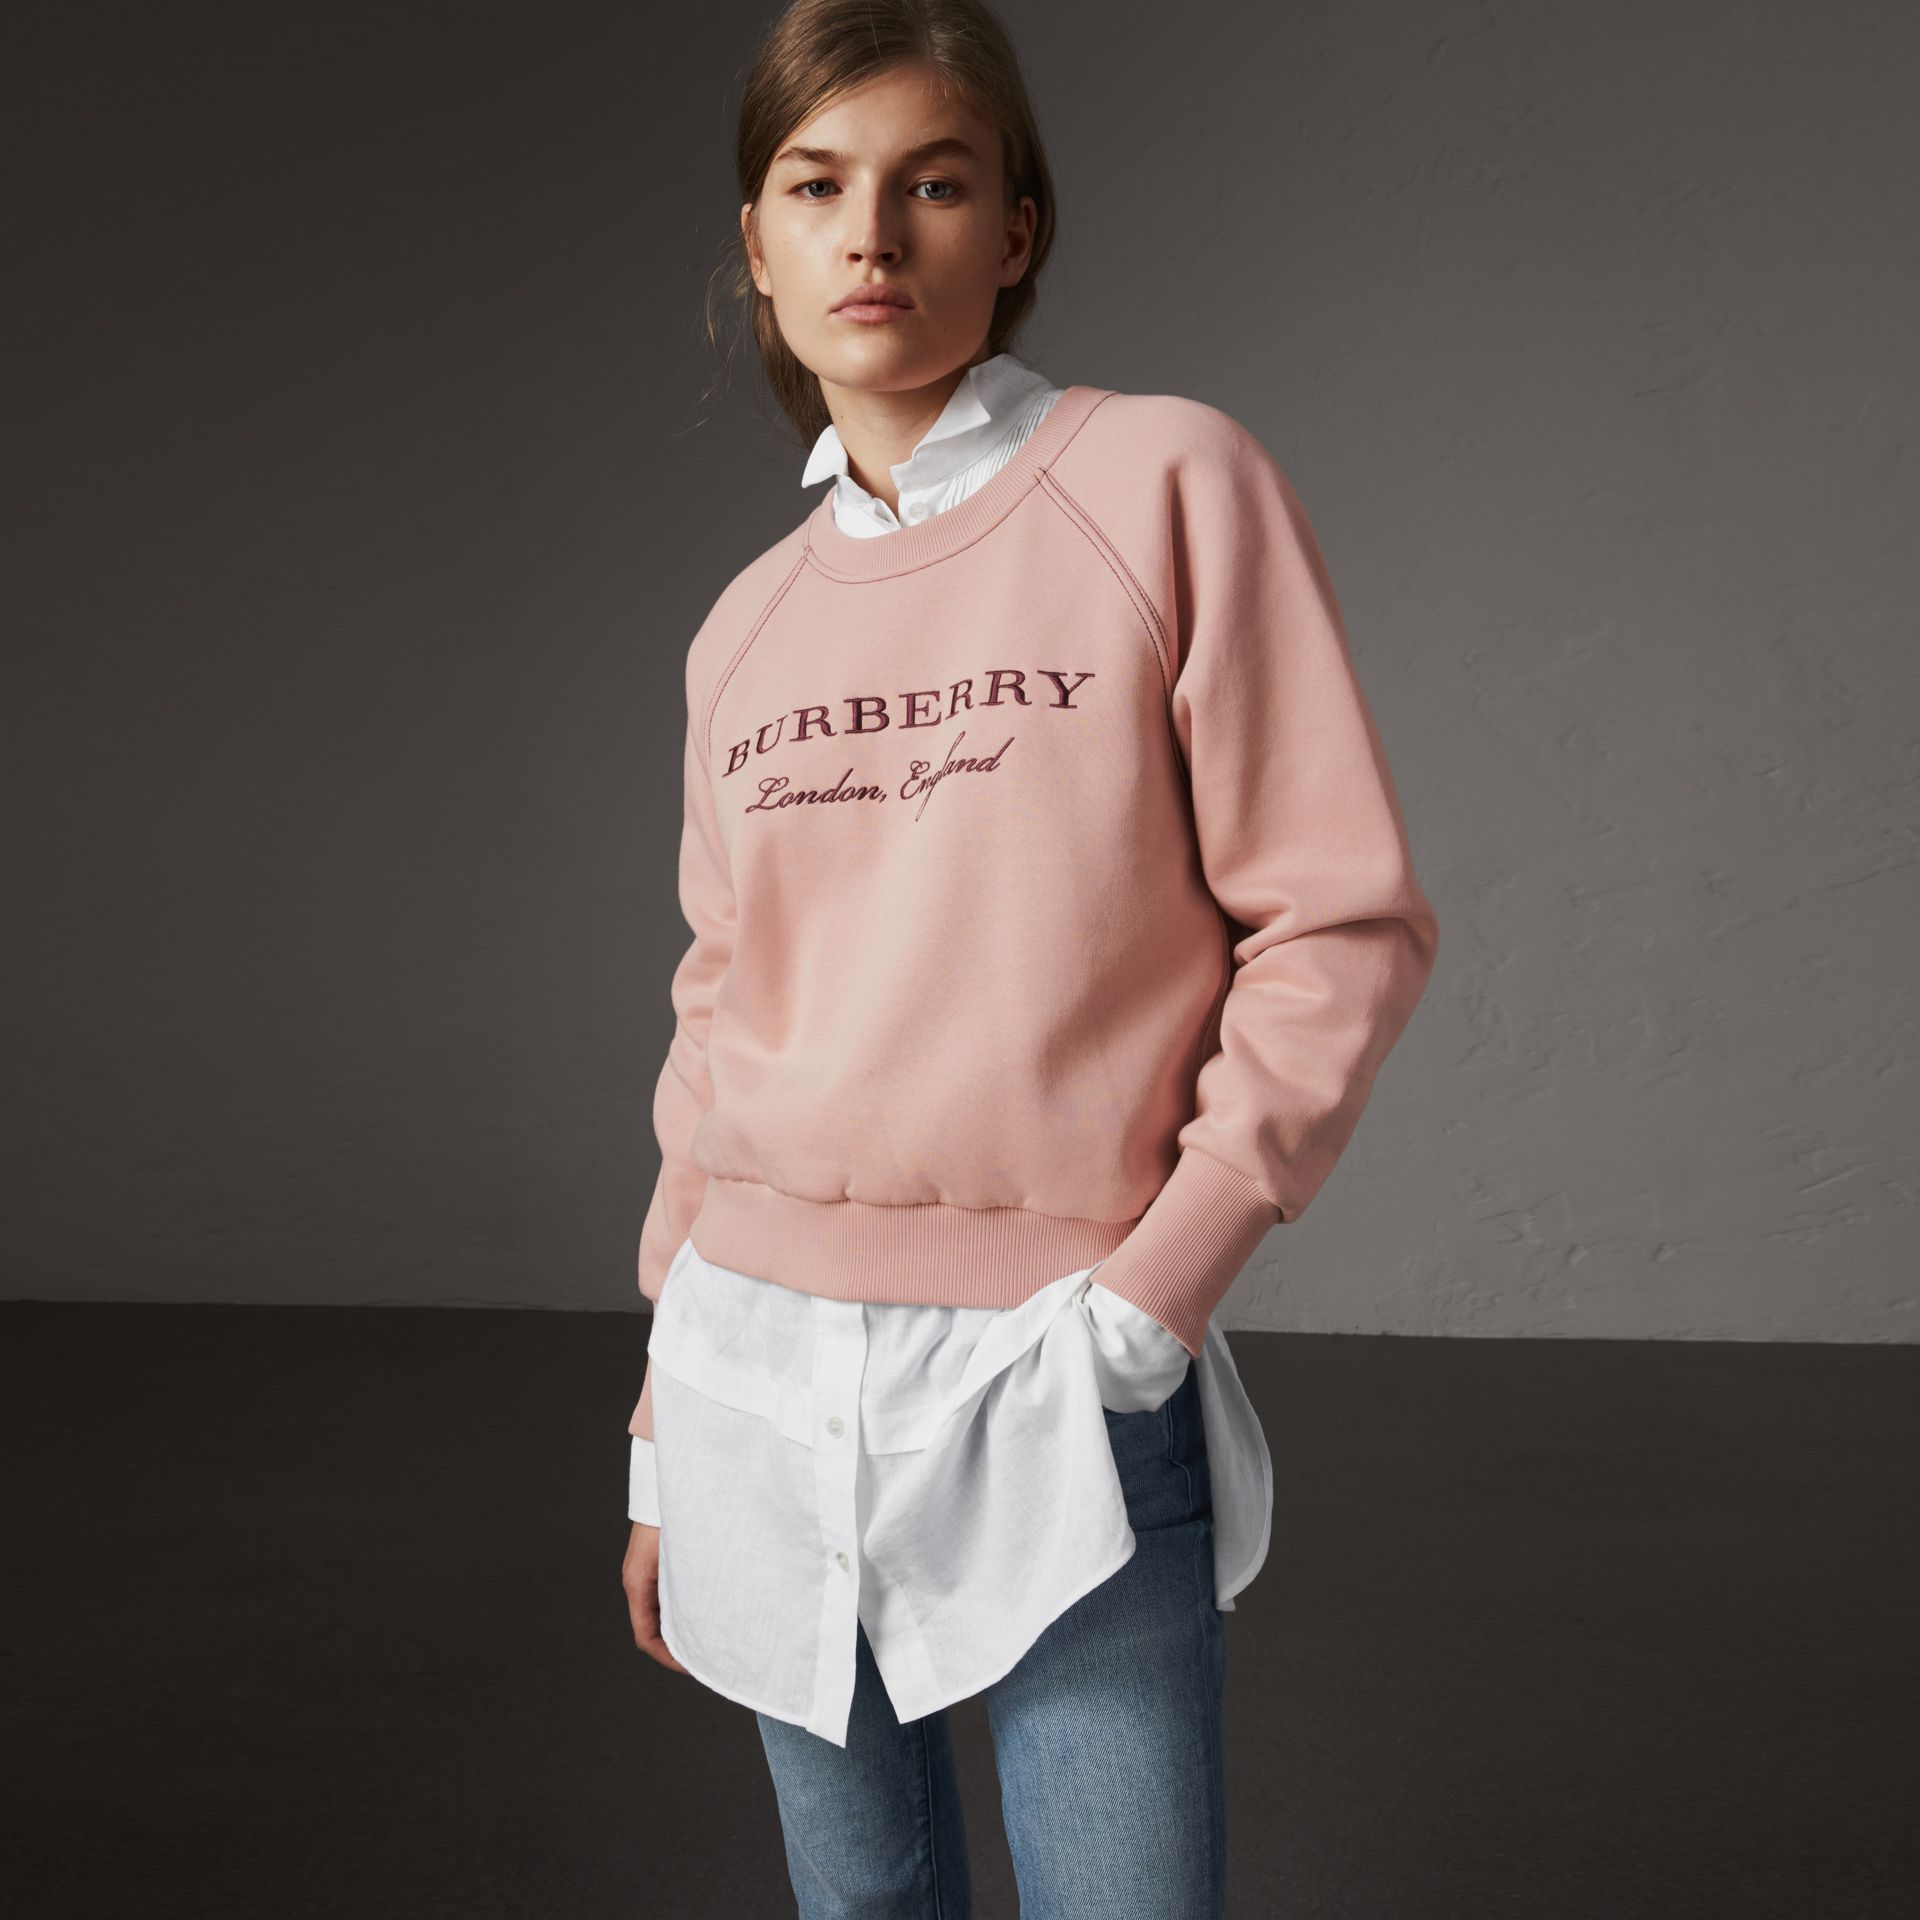 Embroidered Cotton Blend Jersey Sweatshirt in Ash Rose - Women | Burberry - gallery image 0